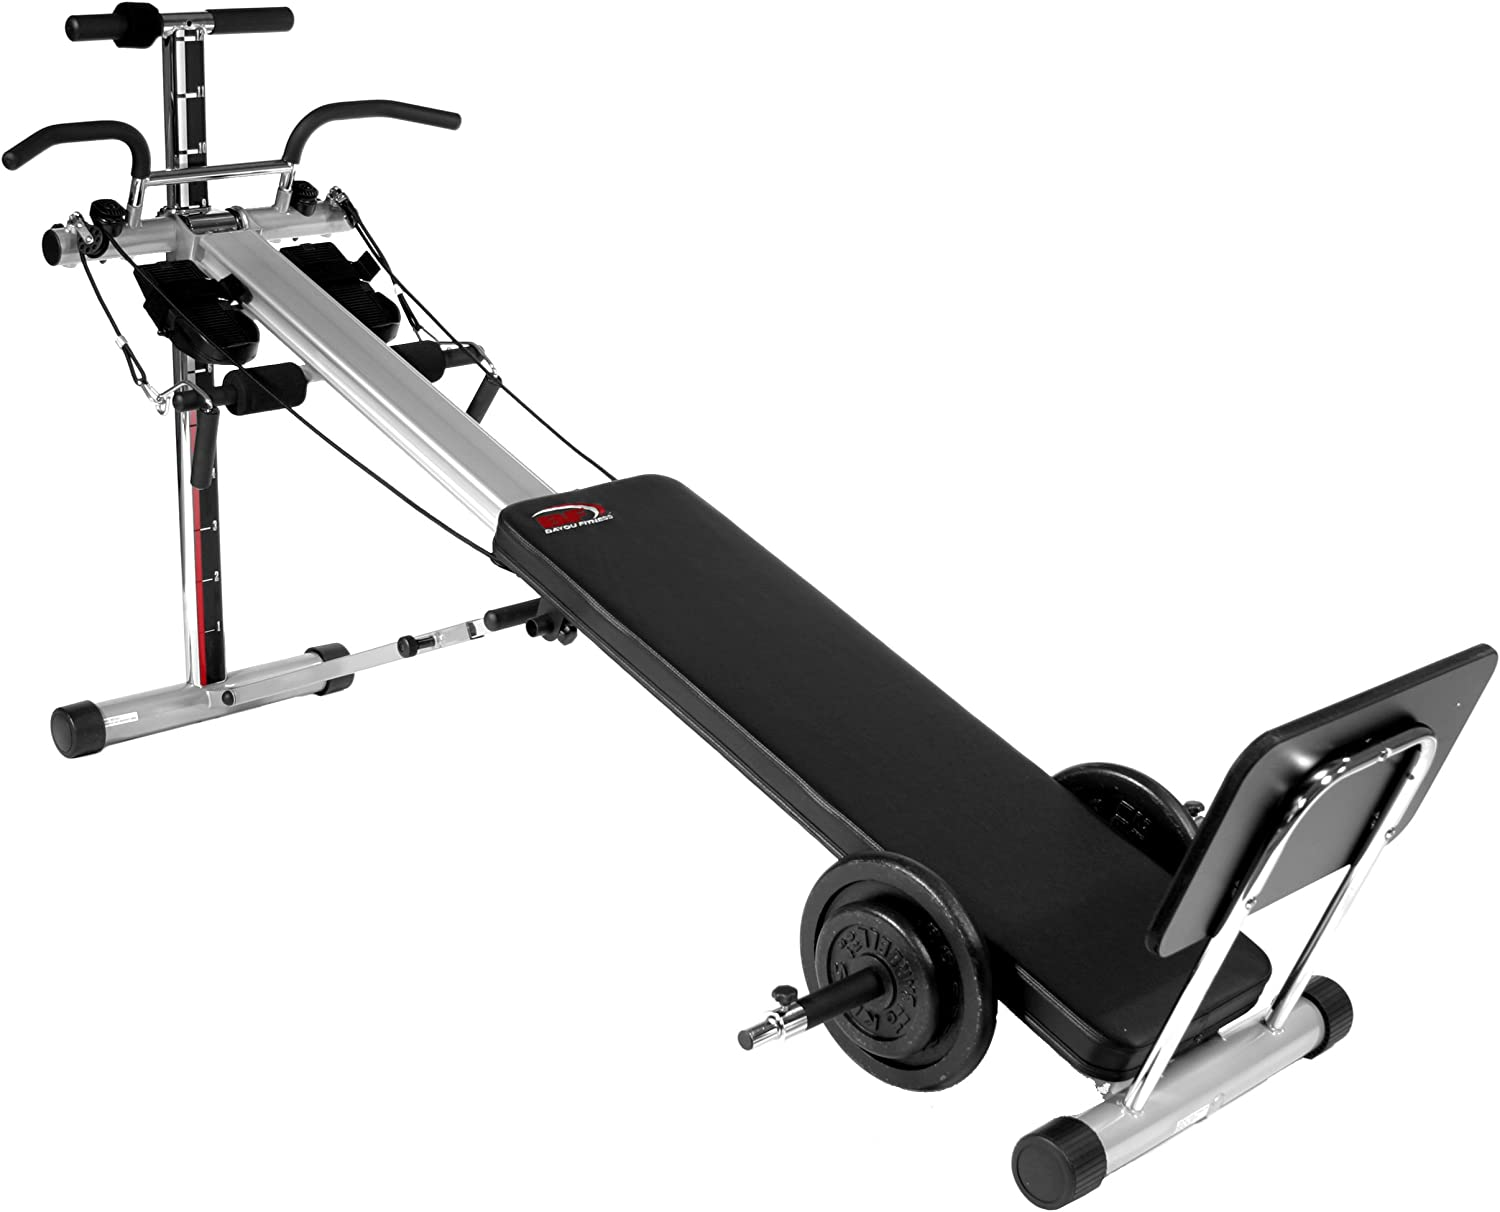 Bayou Fitness Total Trainer Power Pro Home Gym Amazon Ca Sports Outdoors